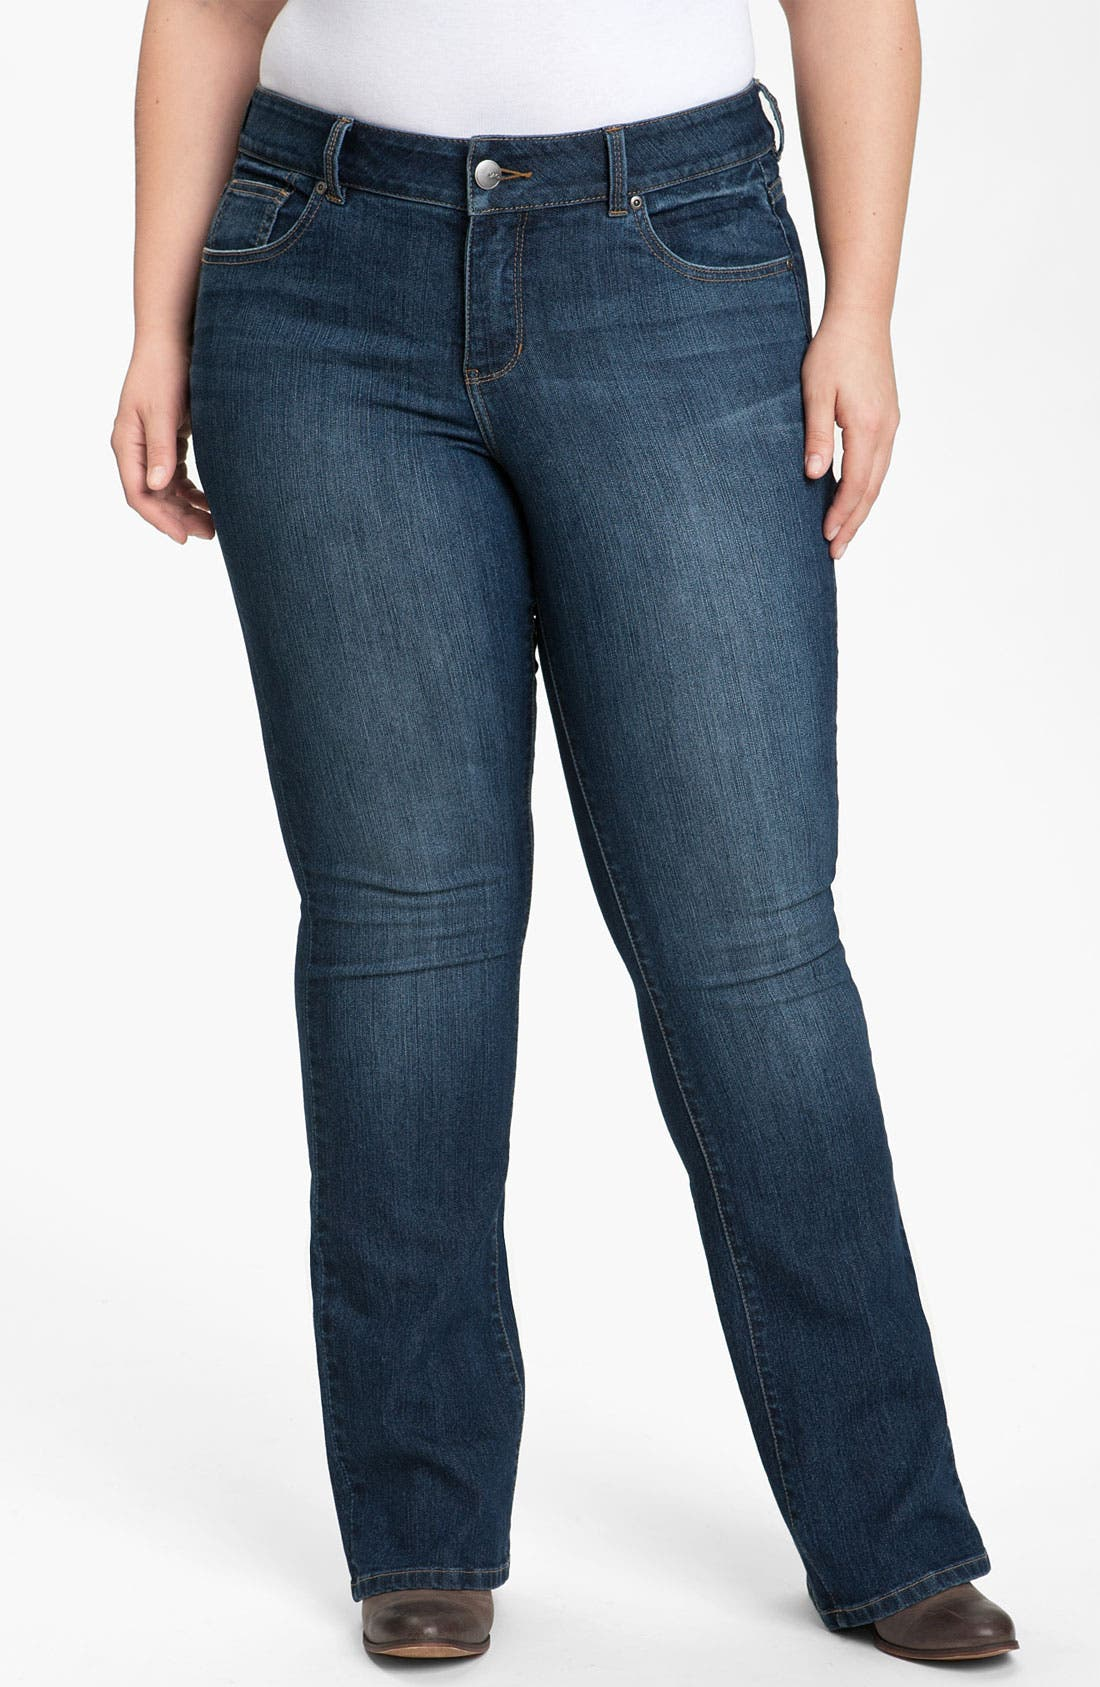 Main Image - Jag Jeans 'Lucy' Bootcut Jeans (Plus Size) (Online Only)